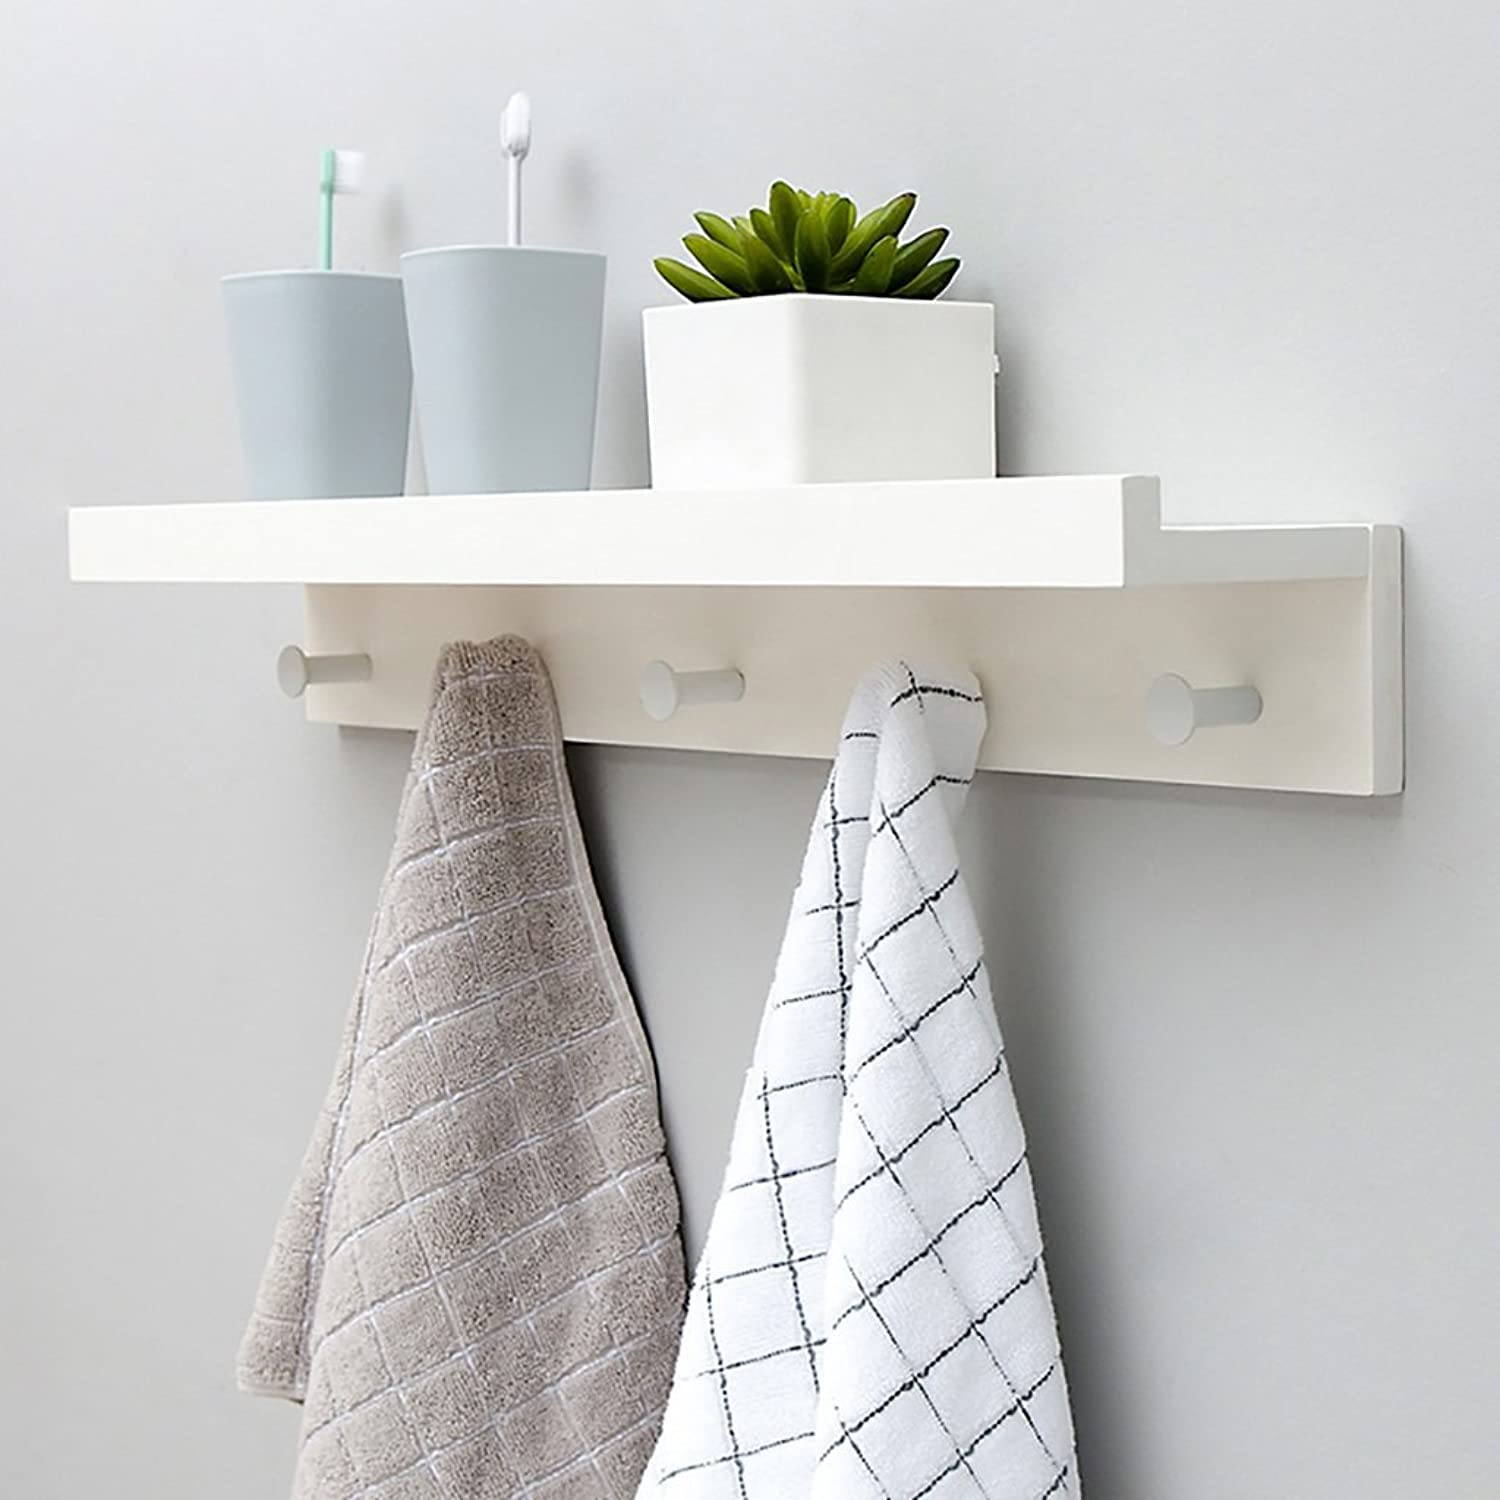 Wall Mounted Coat Rack, Wall-Hung Coat Hooks,Bedroom Living Room Entrance Simple Modern Bamboo System Wall-Mounted Coat Racks. (Size   61.1  8  12cm)